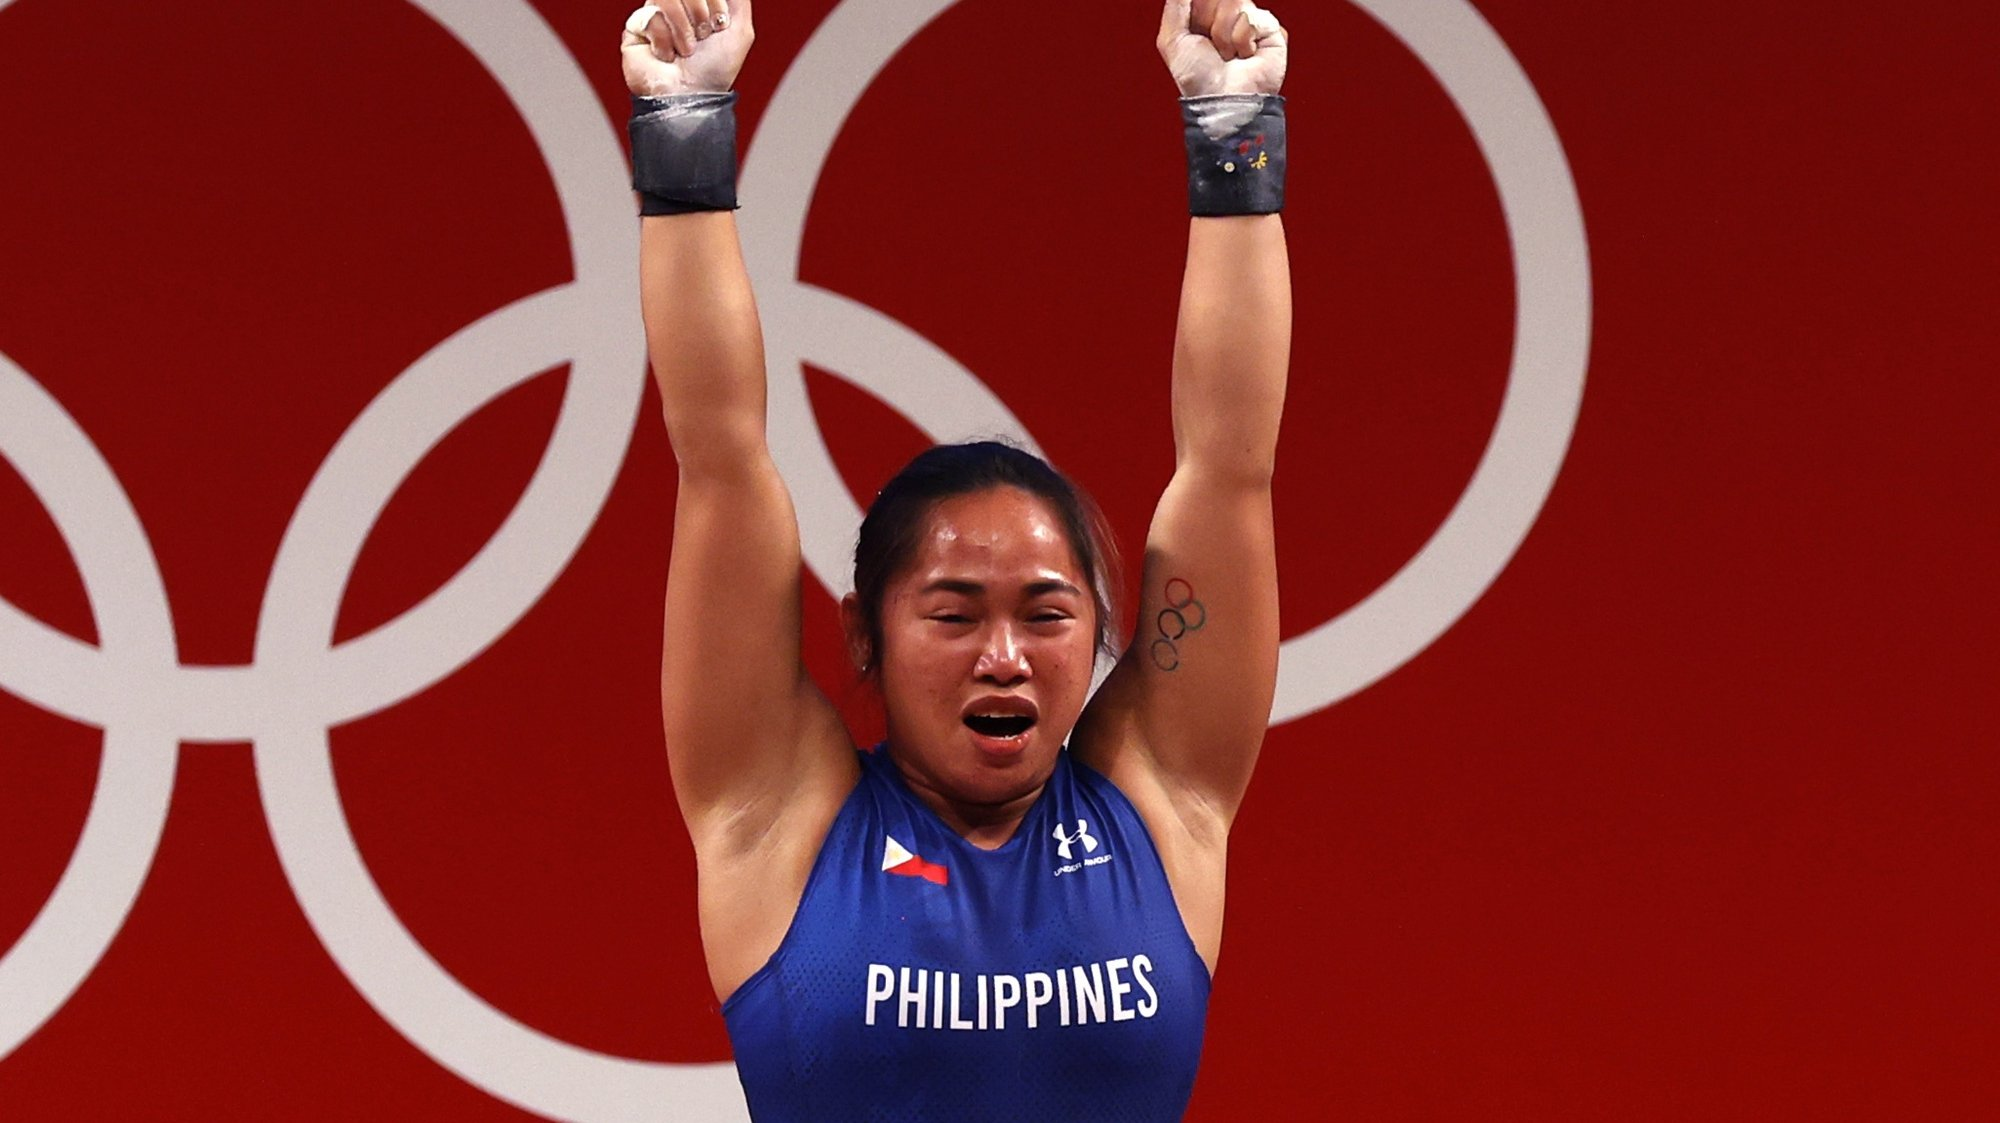 epa09367684 Hidilyn Diaz of the Philippines reacts in the Women's 55kg Snatch during the Weightlifting events of the Tokyo 2020 Olympic Games at the Tokyo International Forum in Tokyo, Japan, 26 July 2021.  EPA/JEON HEON-KYUN